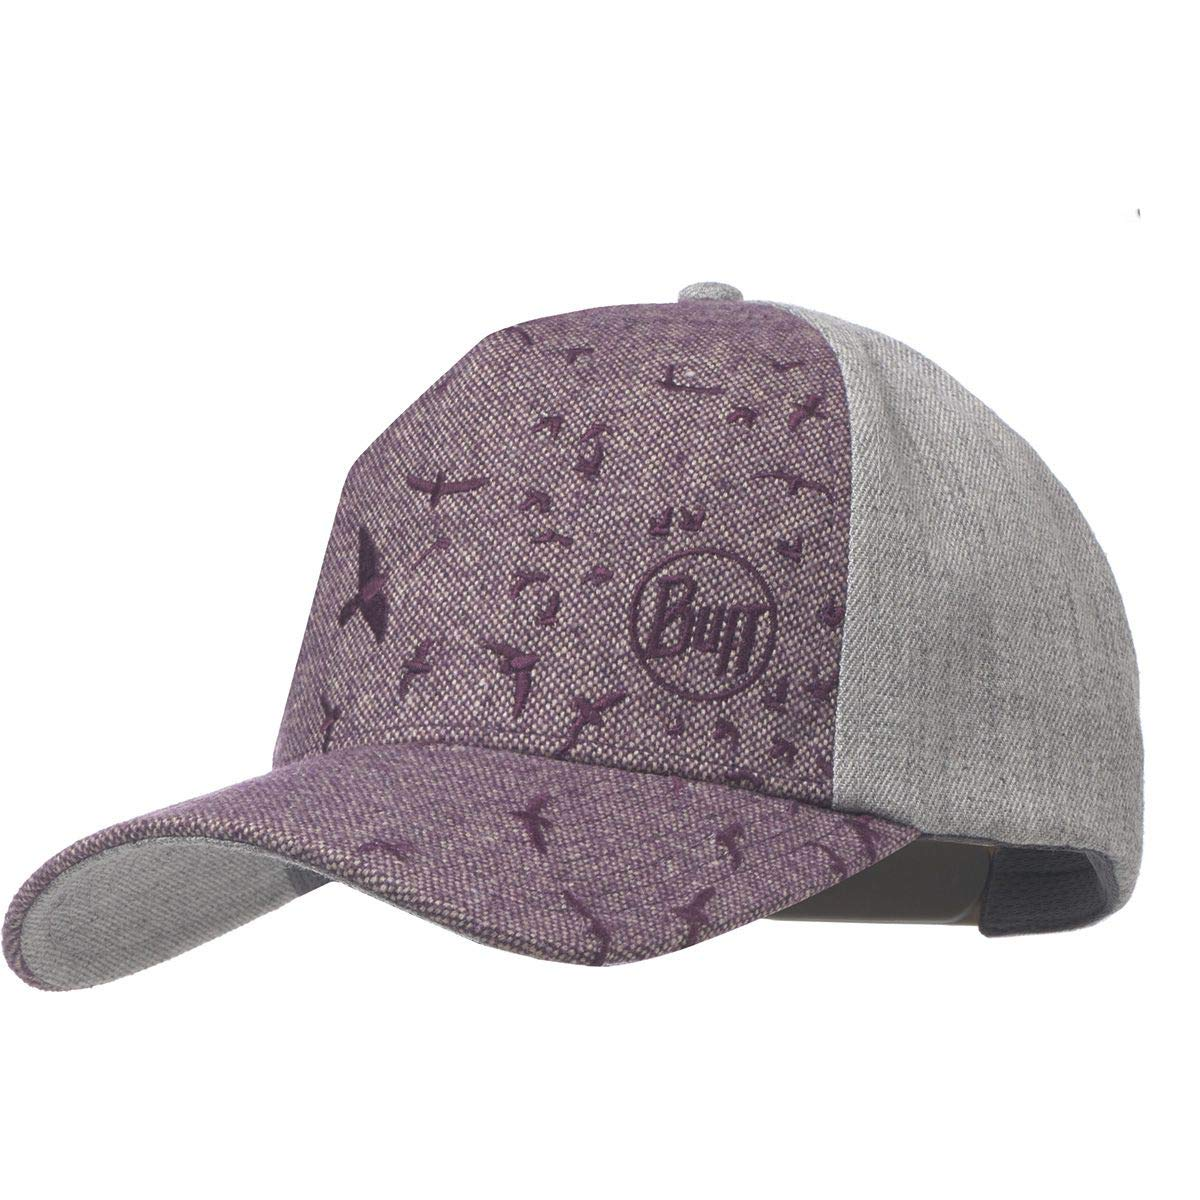 Amazon.com: Buff Snapback Cap - Zair Shadow Purple - Adult Sized: Clothing